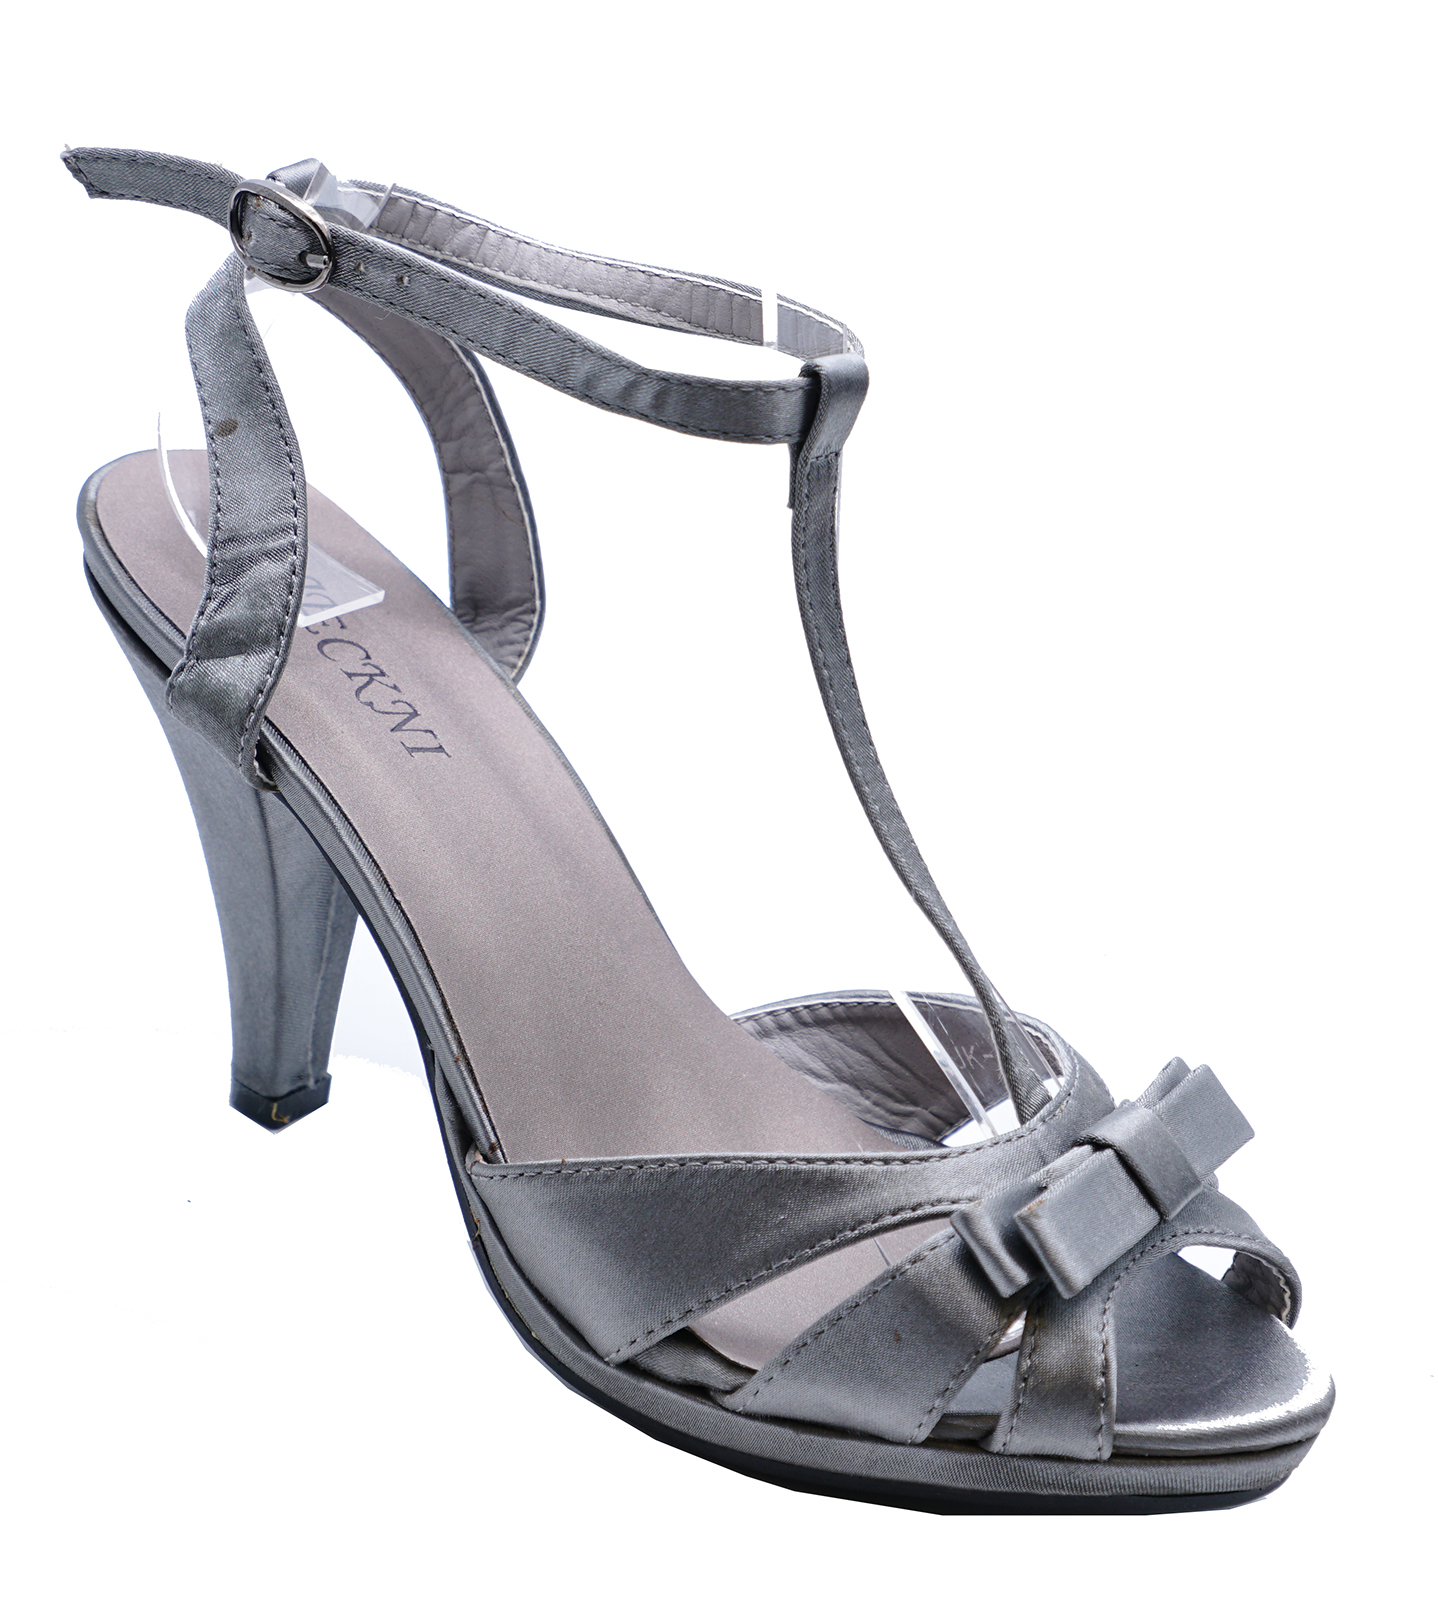 d3b8e9ee1782 Sentinel WOMENS ELEGANT GREY SATIN OPEN-TOE EVENING SANDALS PARTY SHOES  SIZES 3-8